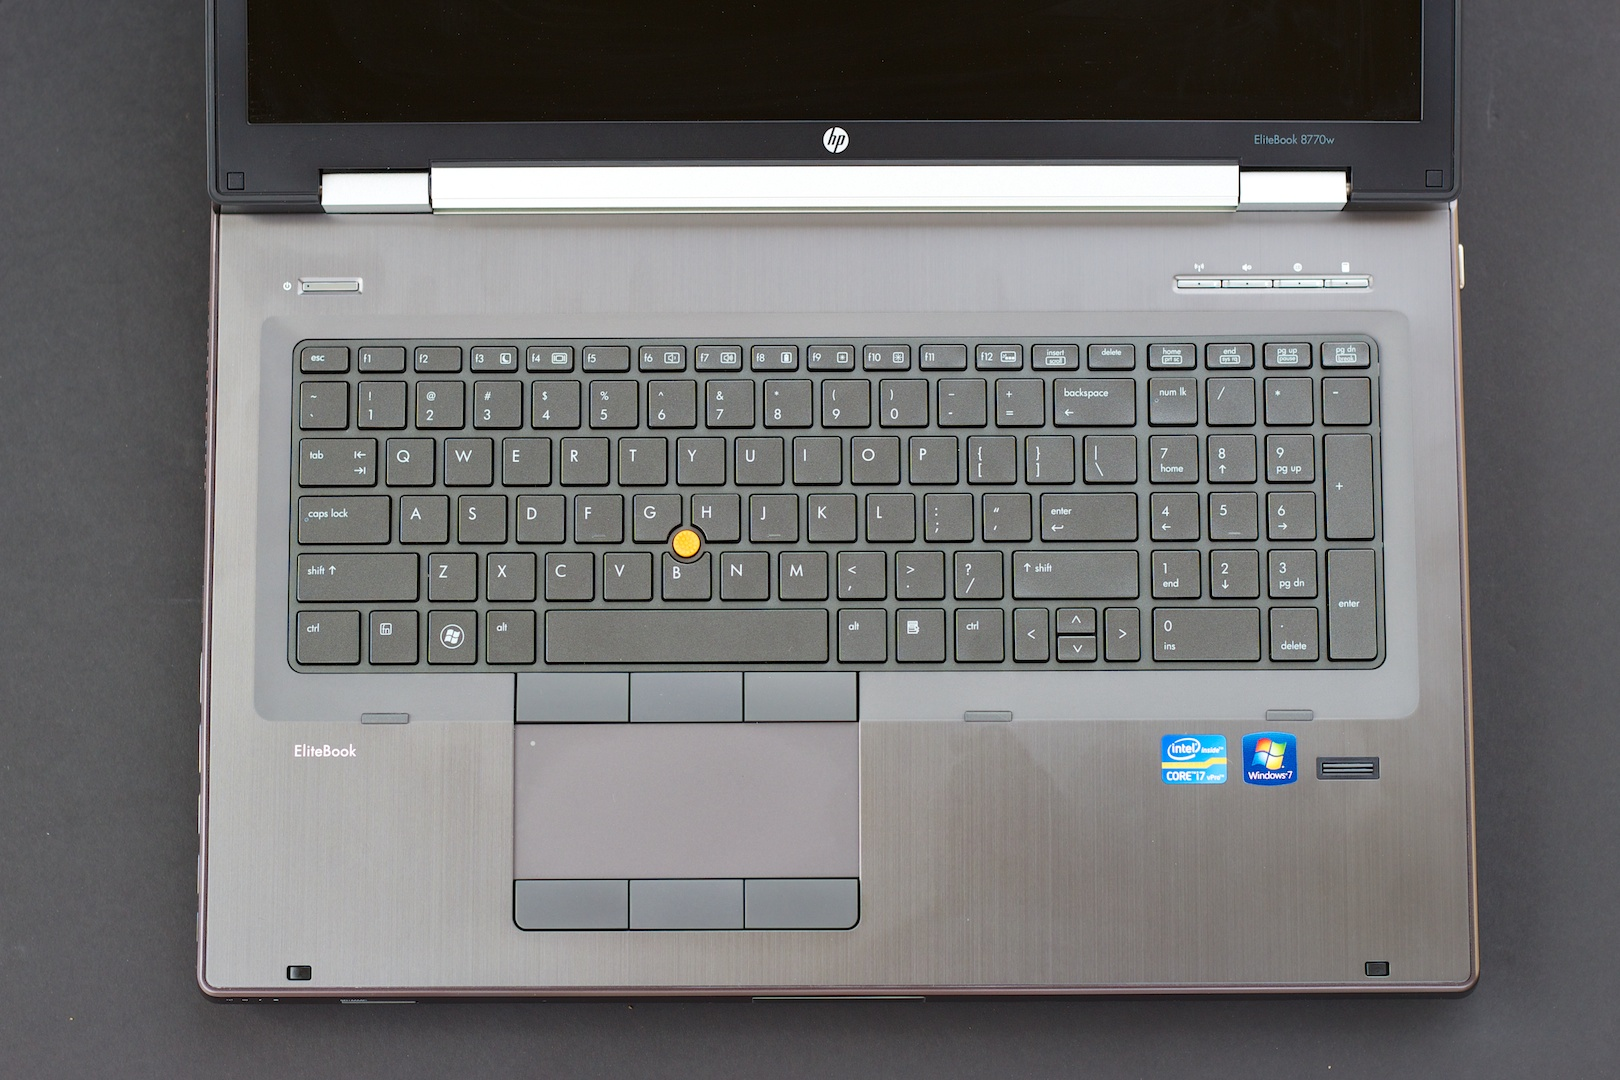 10 key laptop